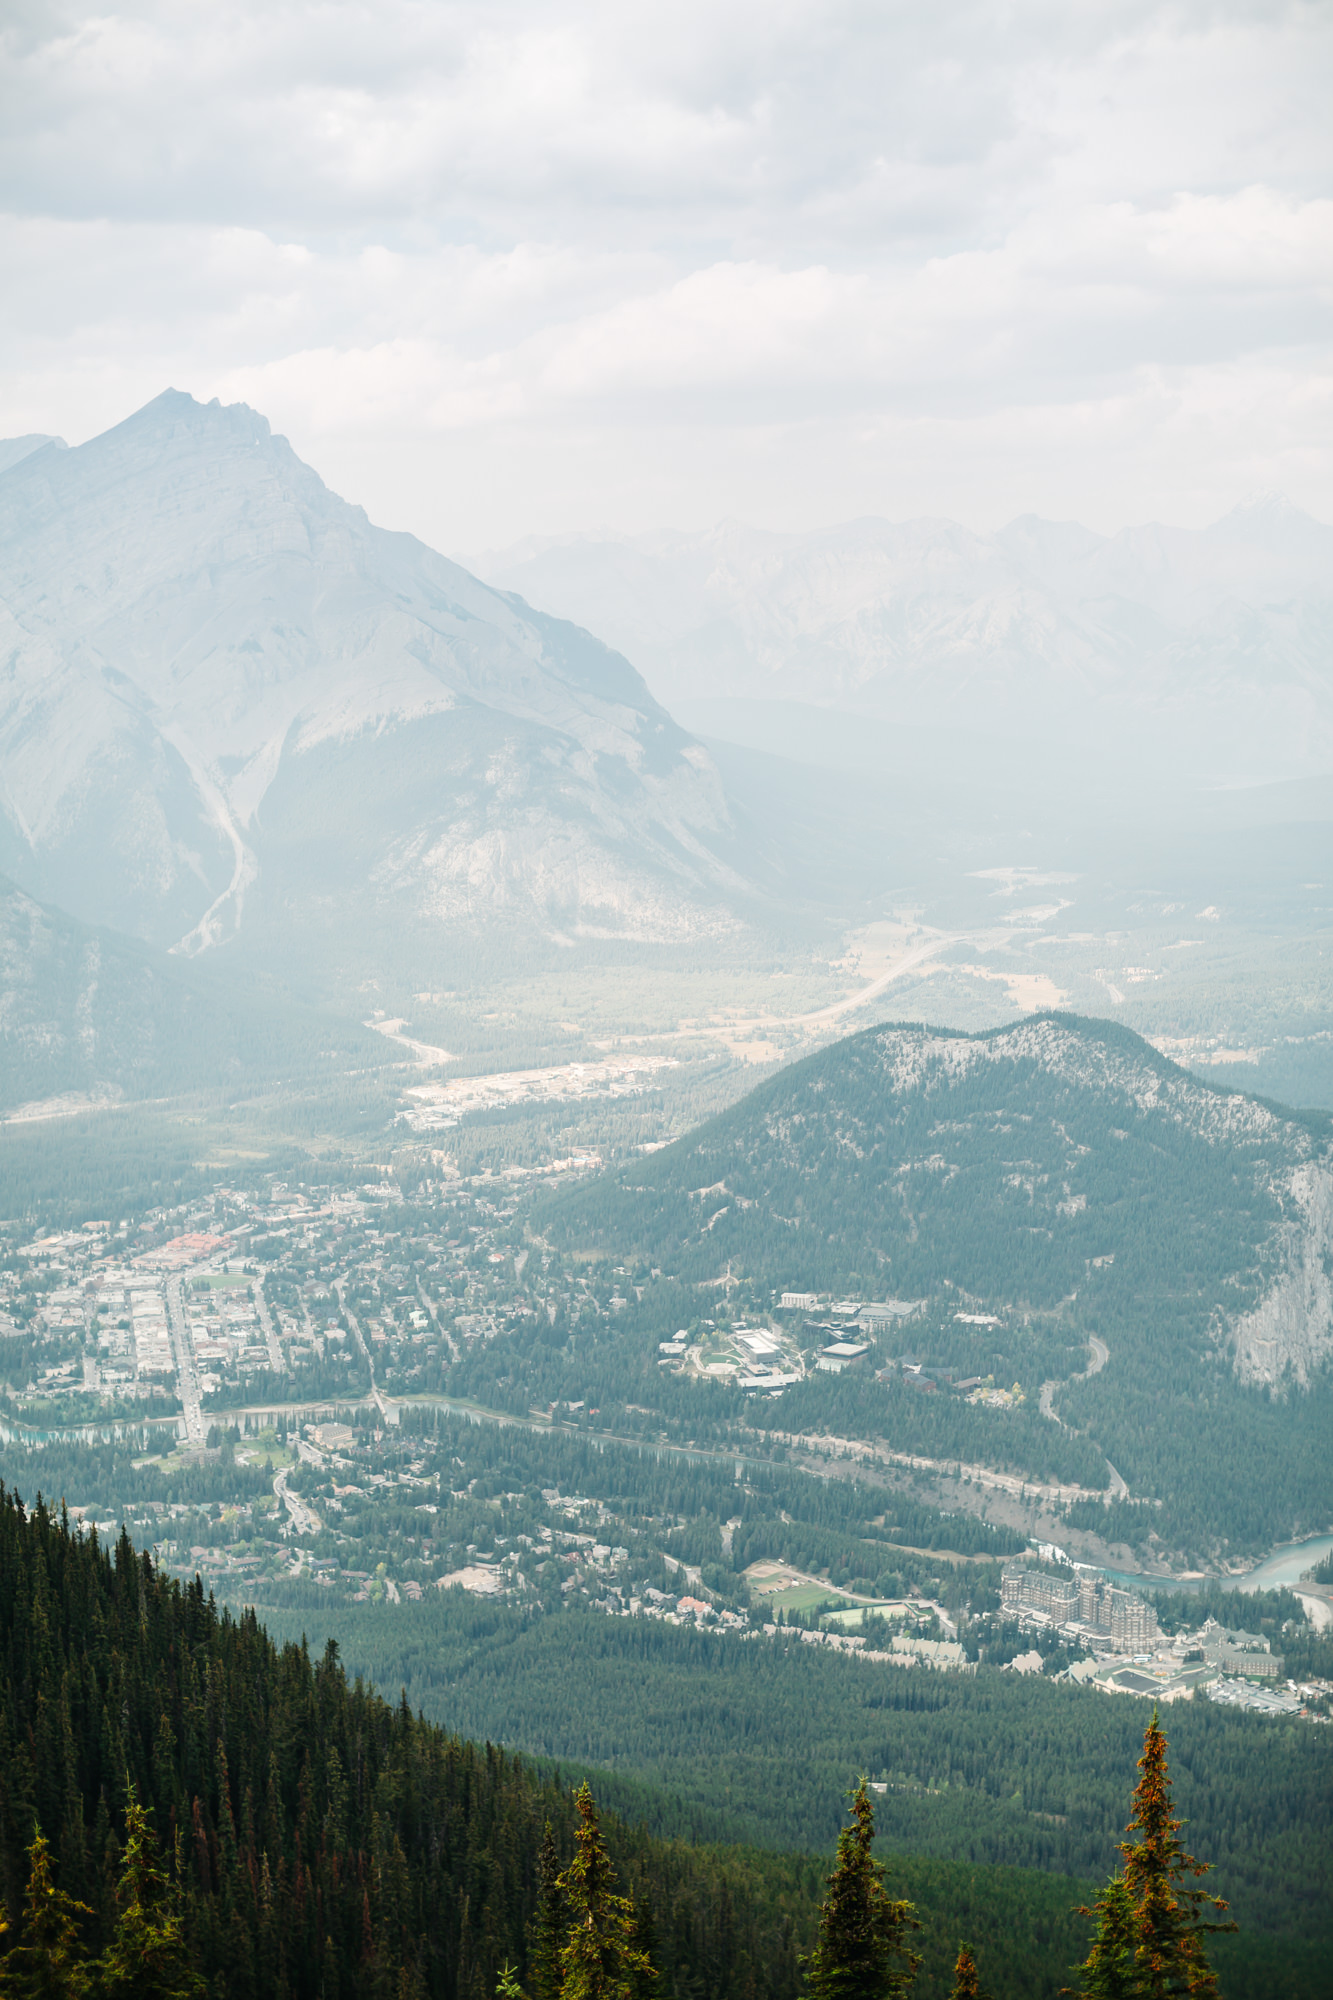 View of Banff from the summit of Sulphur Mountain